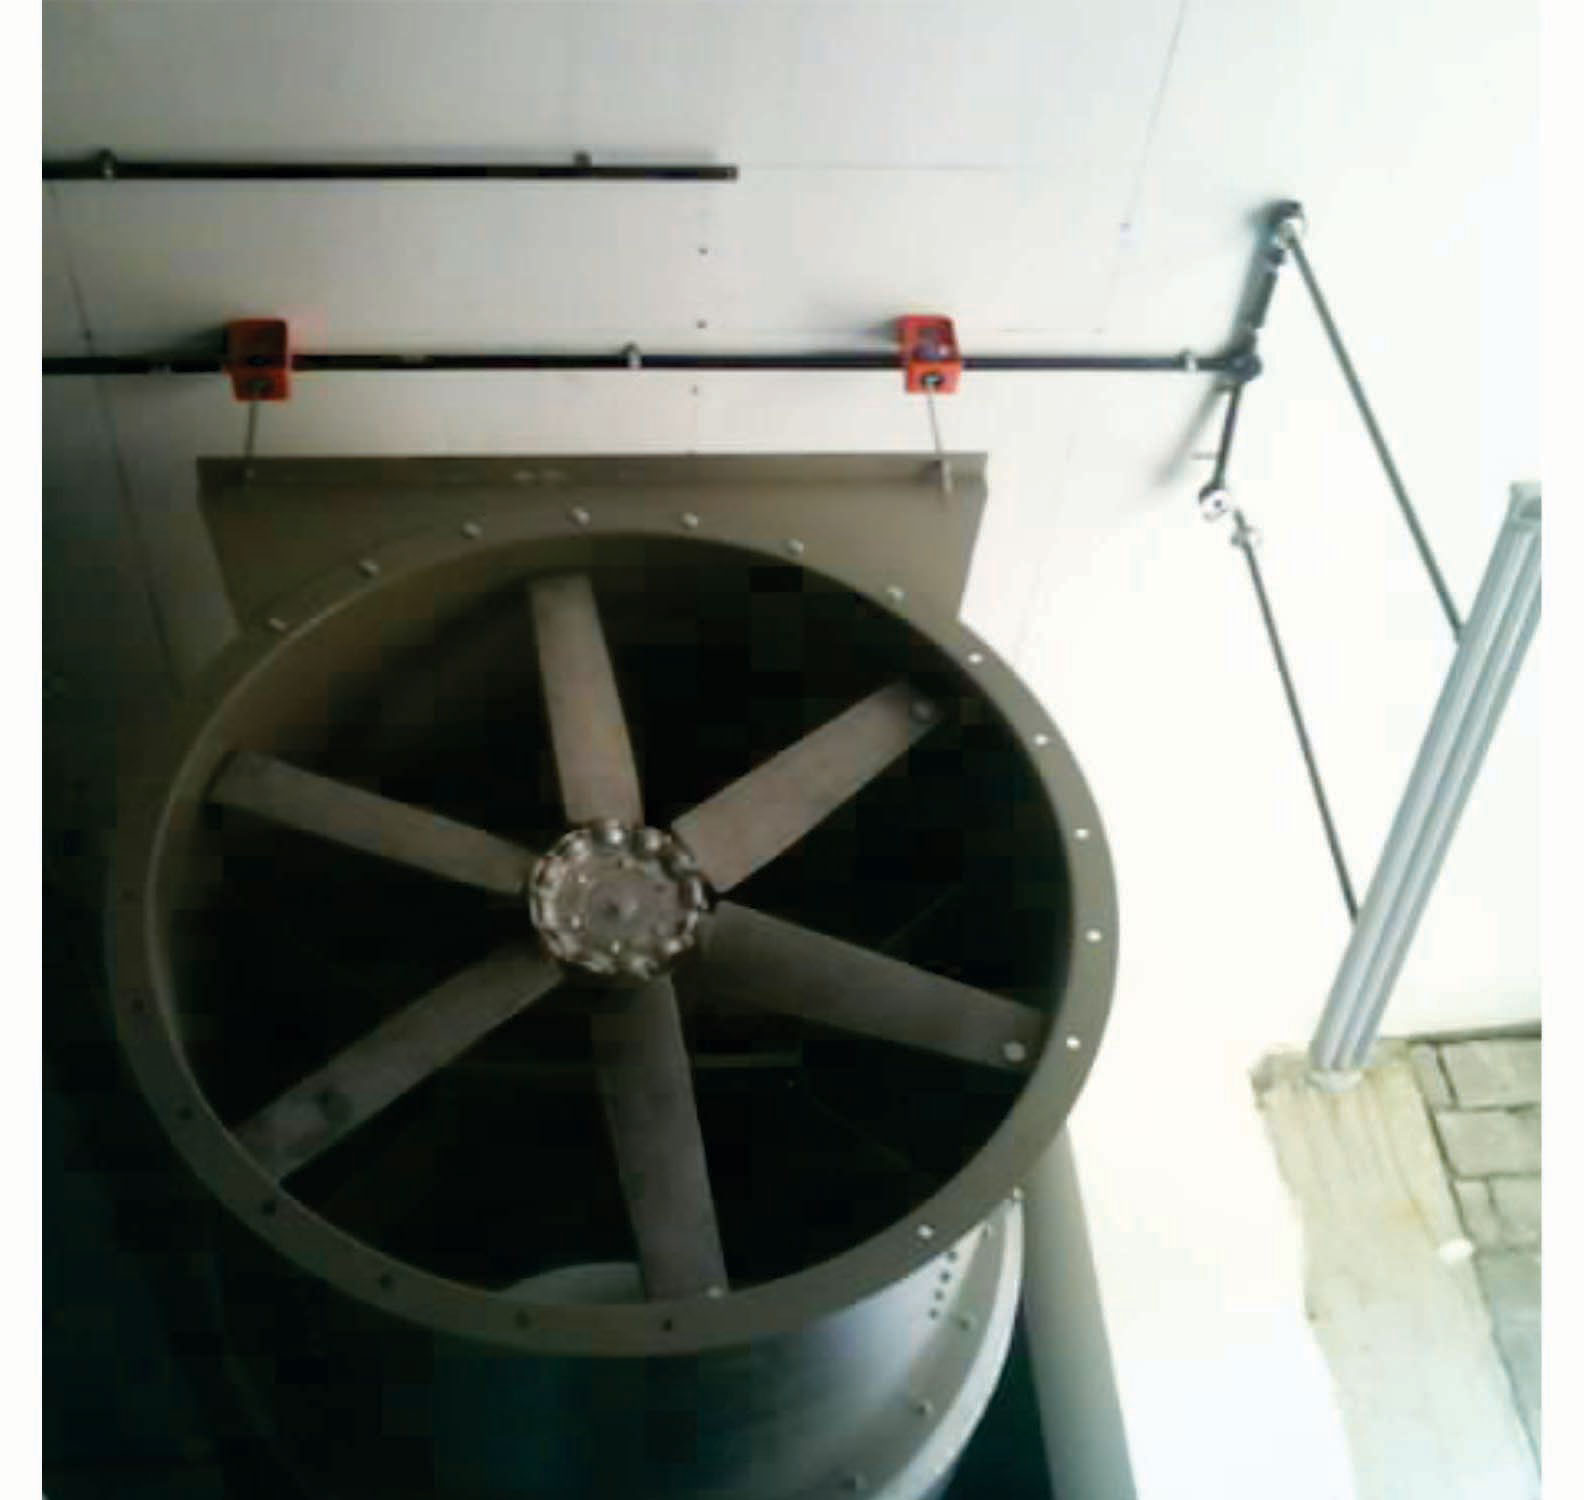 Expansion Bellow Vibration Amp Seismic Isolation Pipe